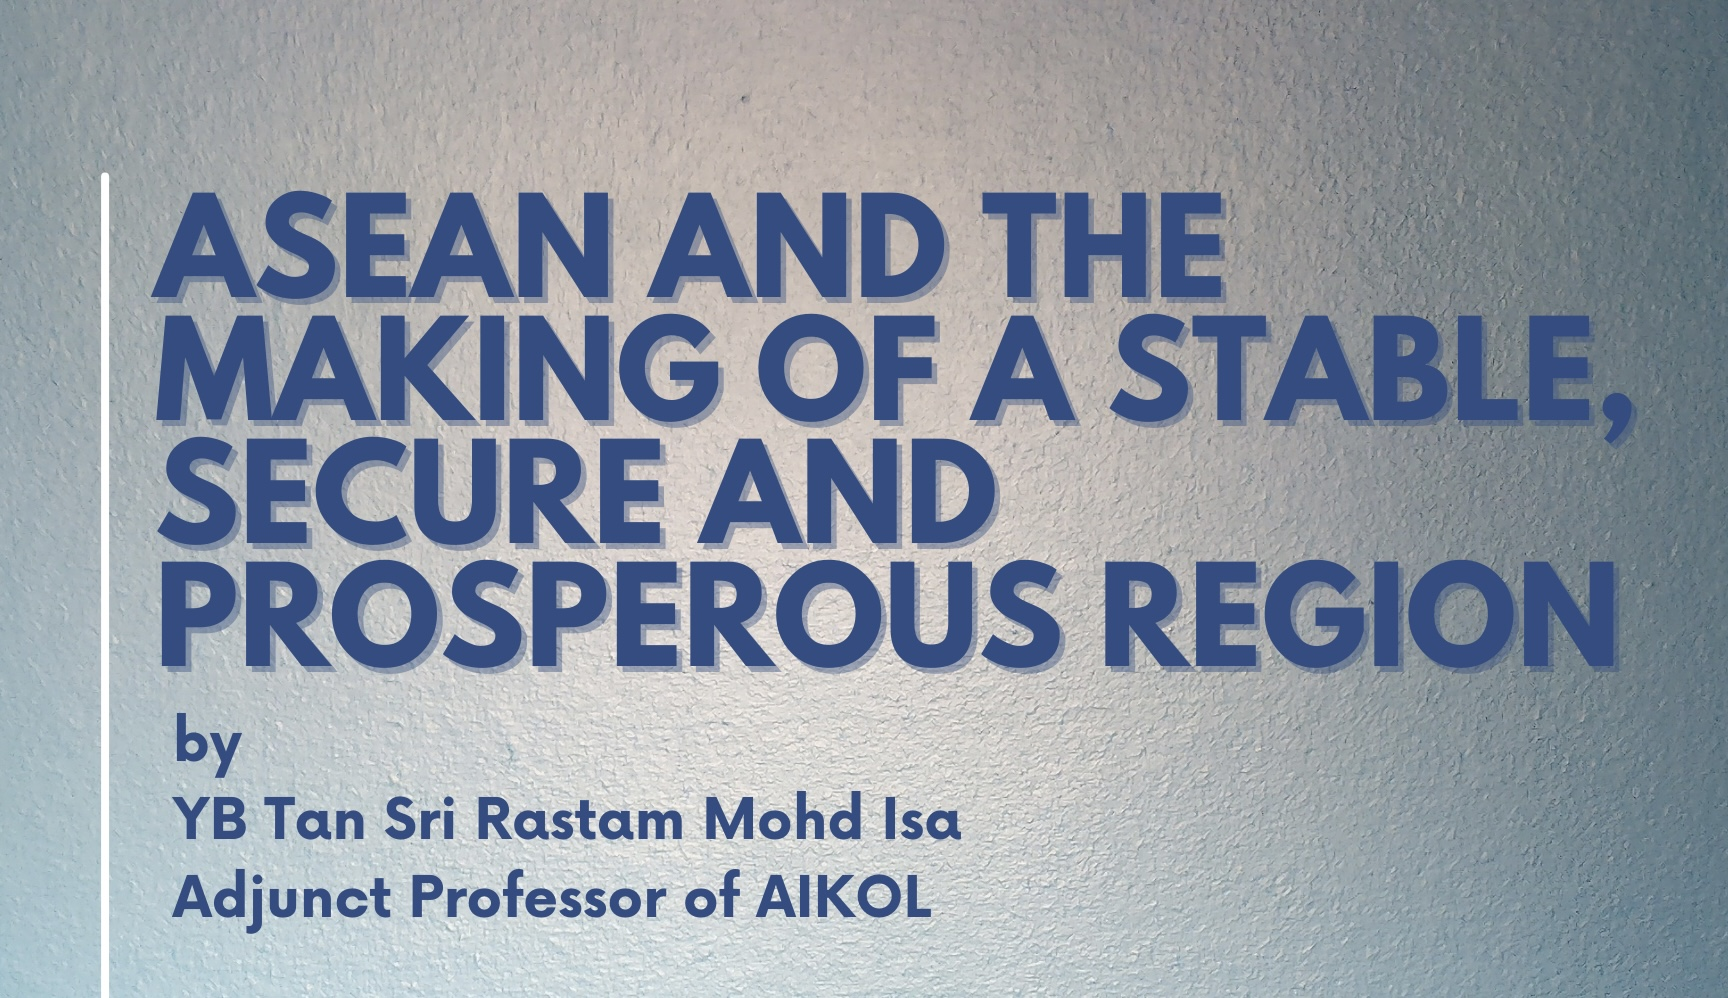 SPECIAL LECTURE BY YB TAN SRI RASTAM MOHD ISA, ADJUNCT PROFESSOR OF AIKOL